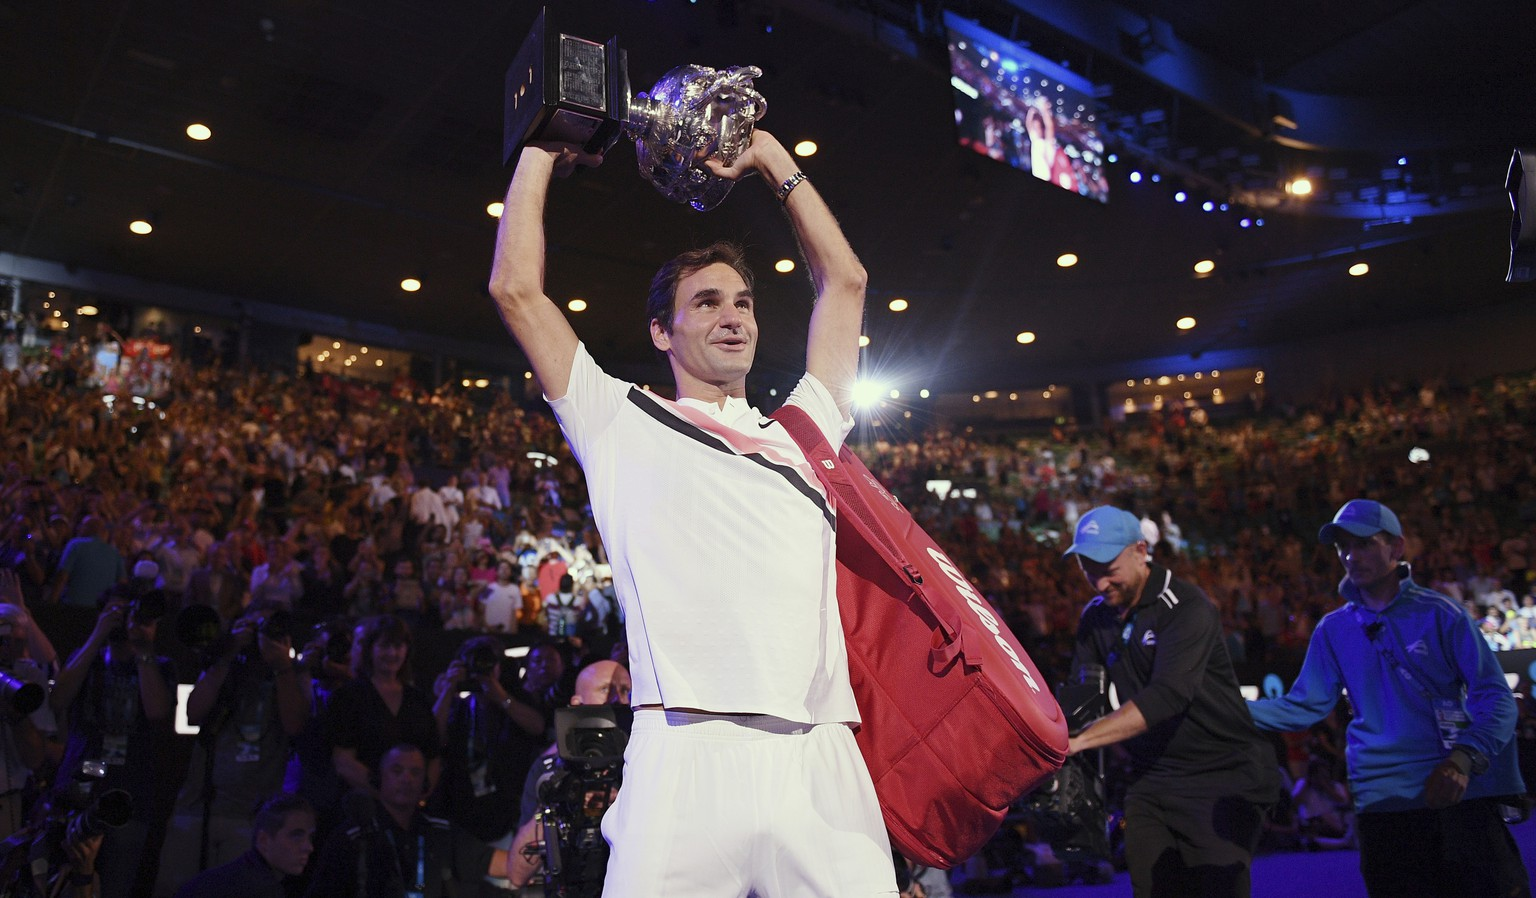 Switzerland's Roger Federer holds his trophy aloft after defeating Croatia's Marin Cilic in the men's singles final at the Australian Open tennis championships in Melbourne, Australia, Sunday, Jan. 28, 2018. (AP Photo/Andy Brownbill)